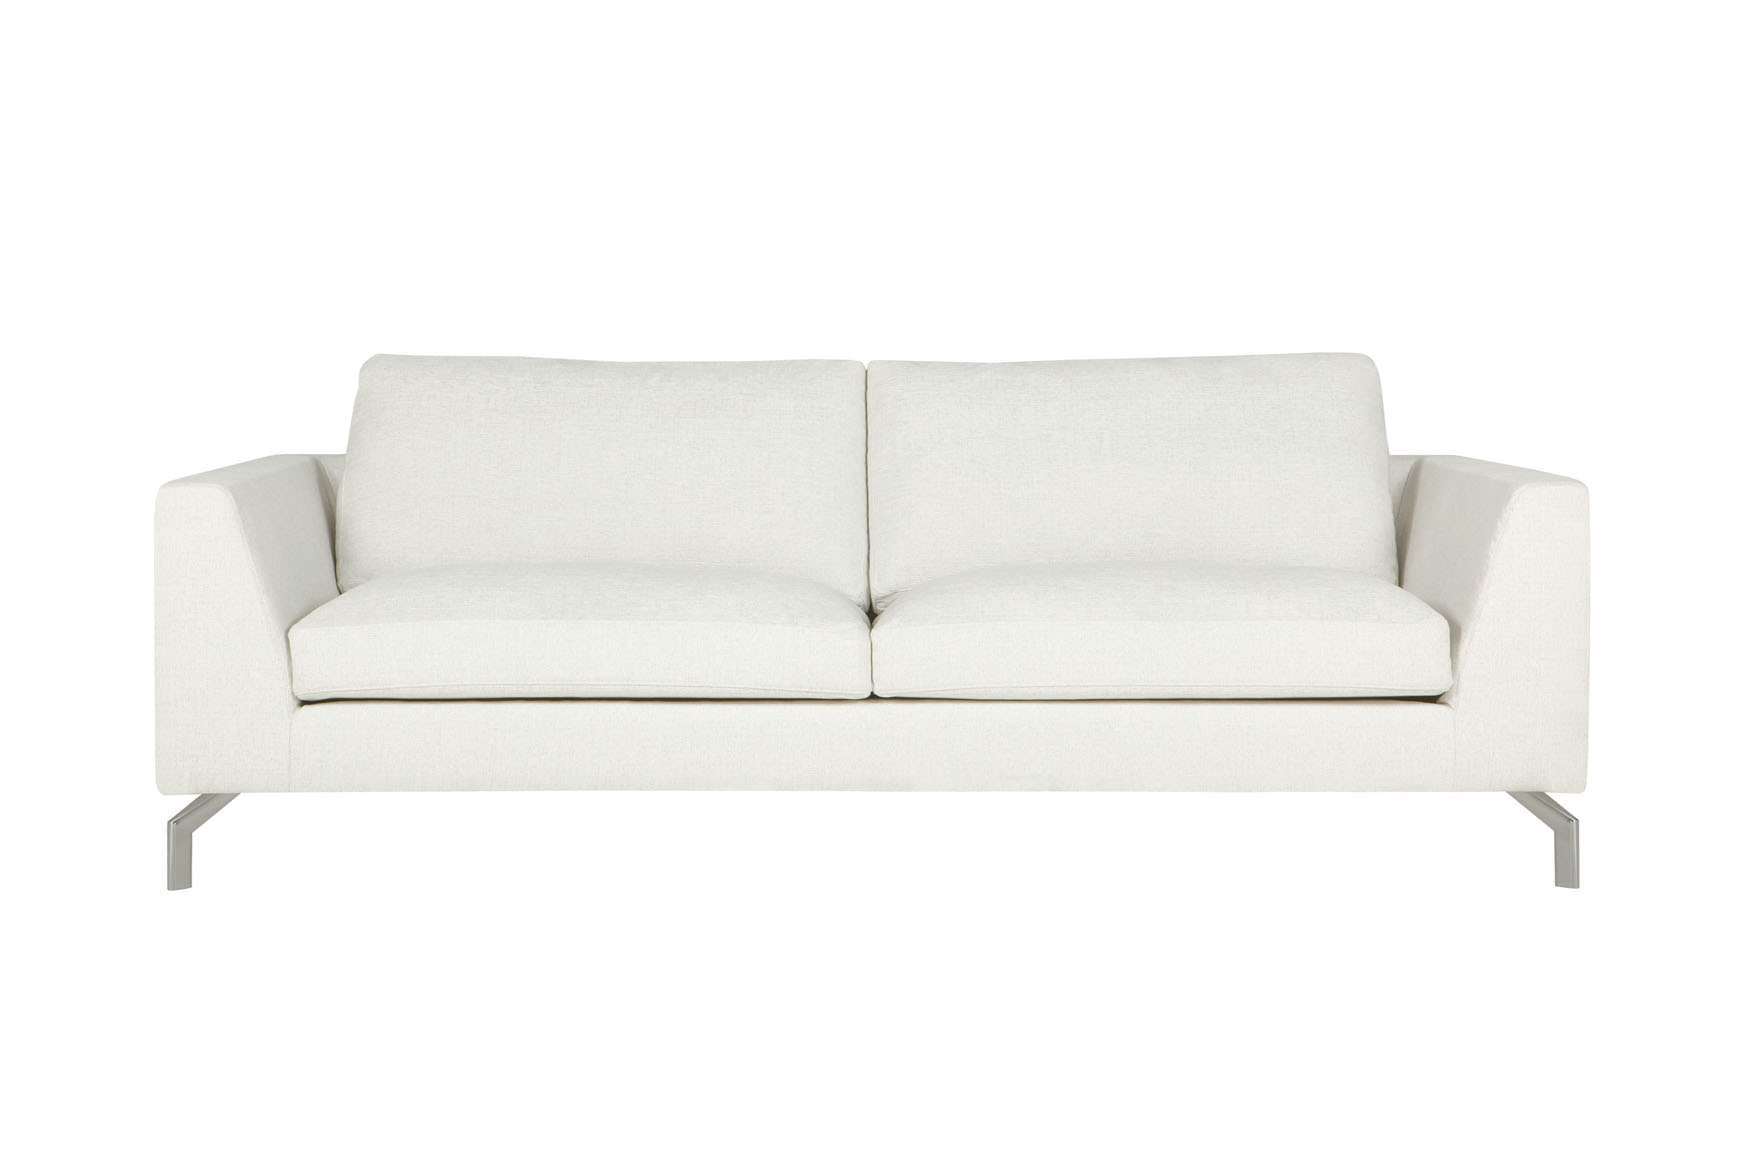 Allegra 3 Seater Sofa-0